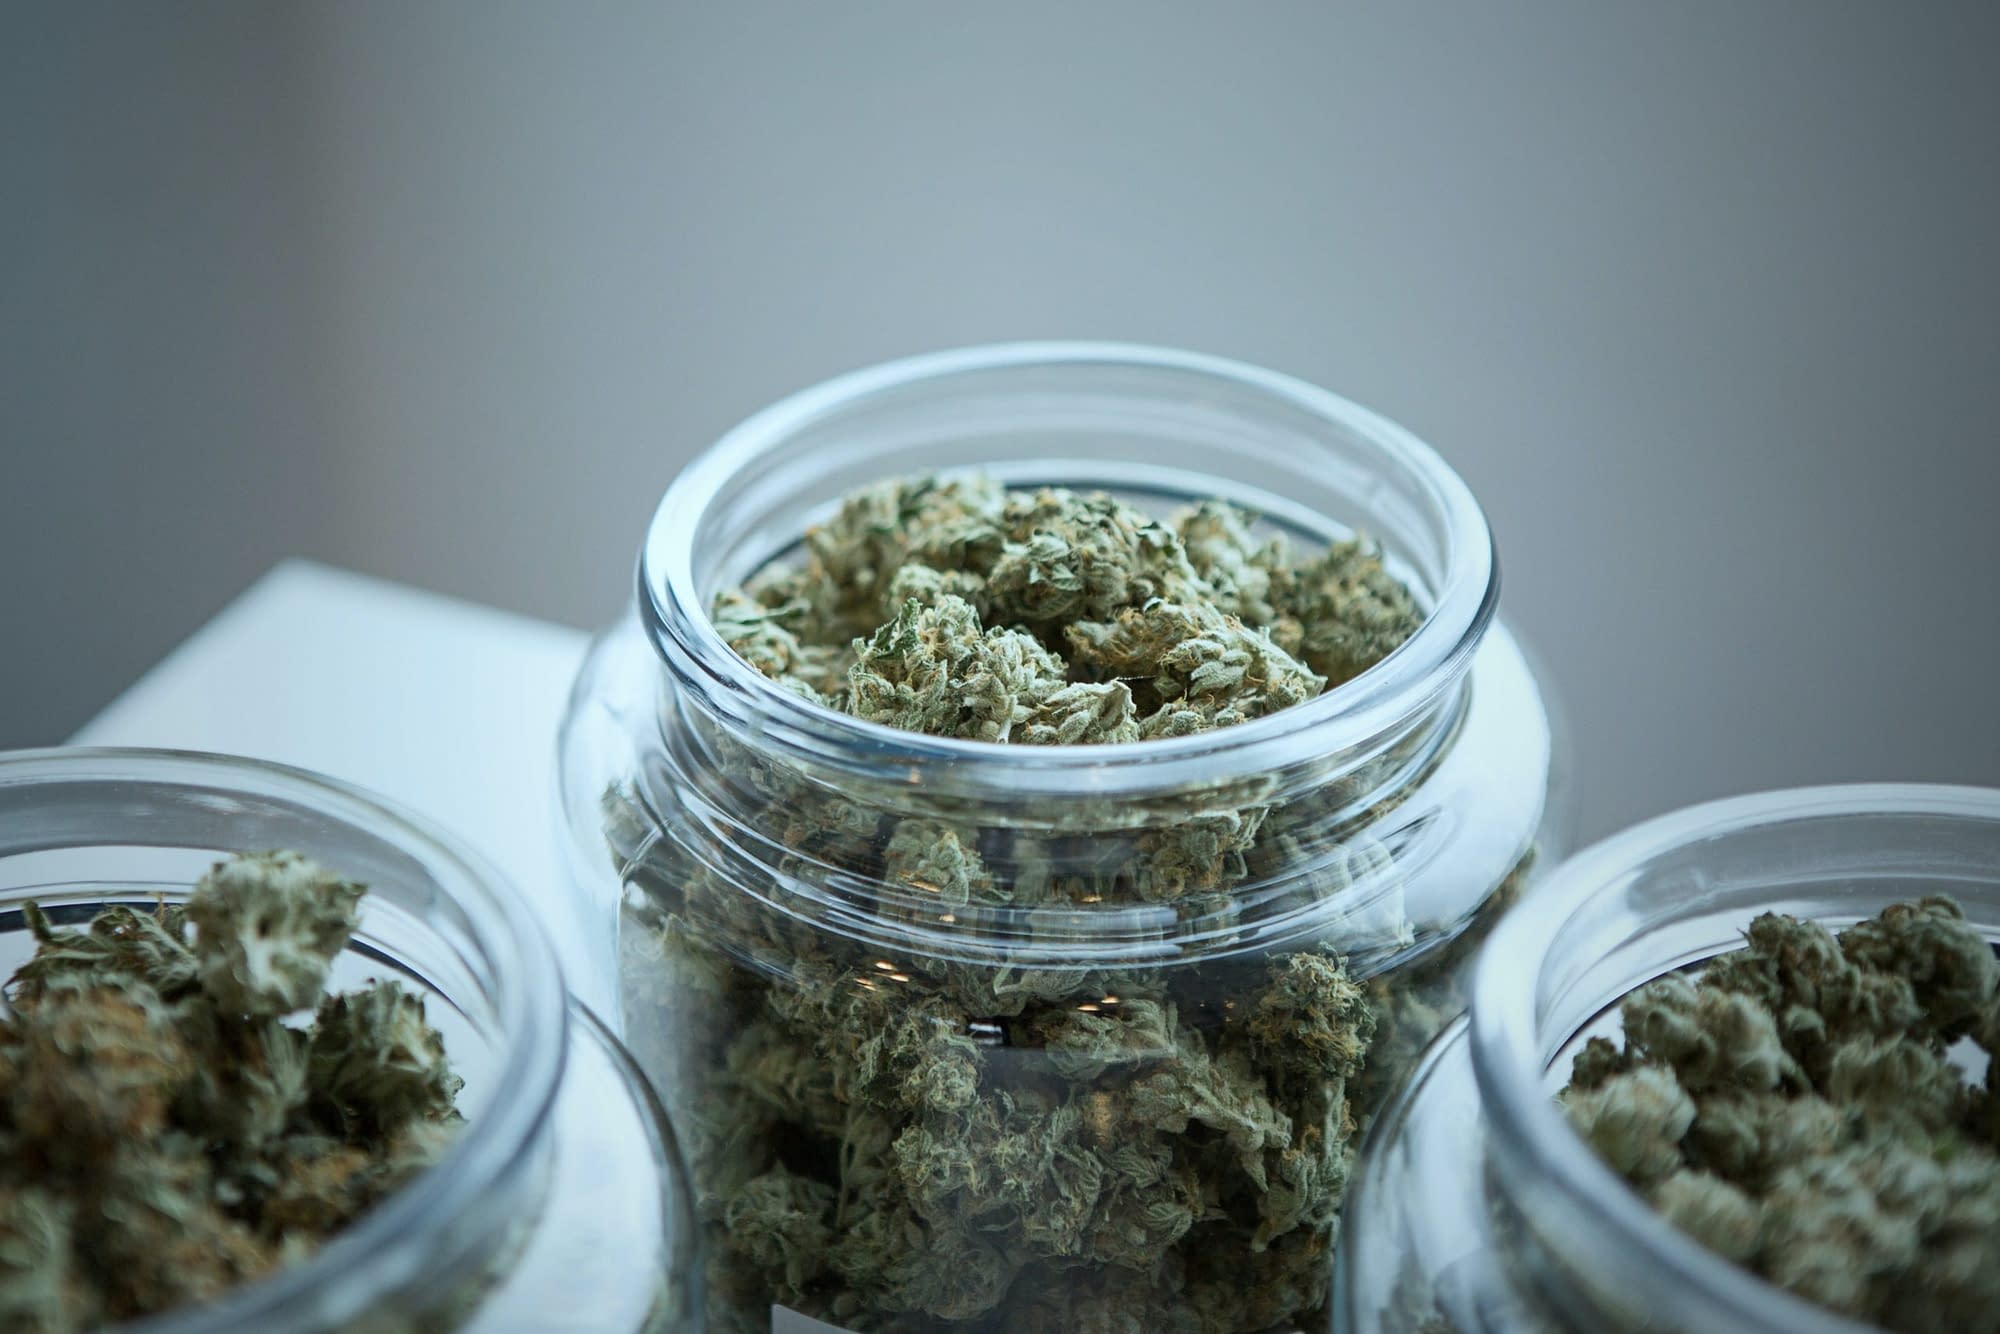 Cannabis buds being cured in a glass jar